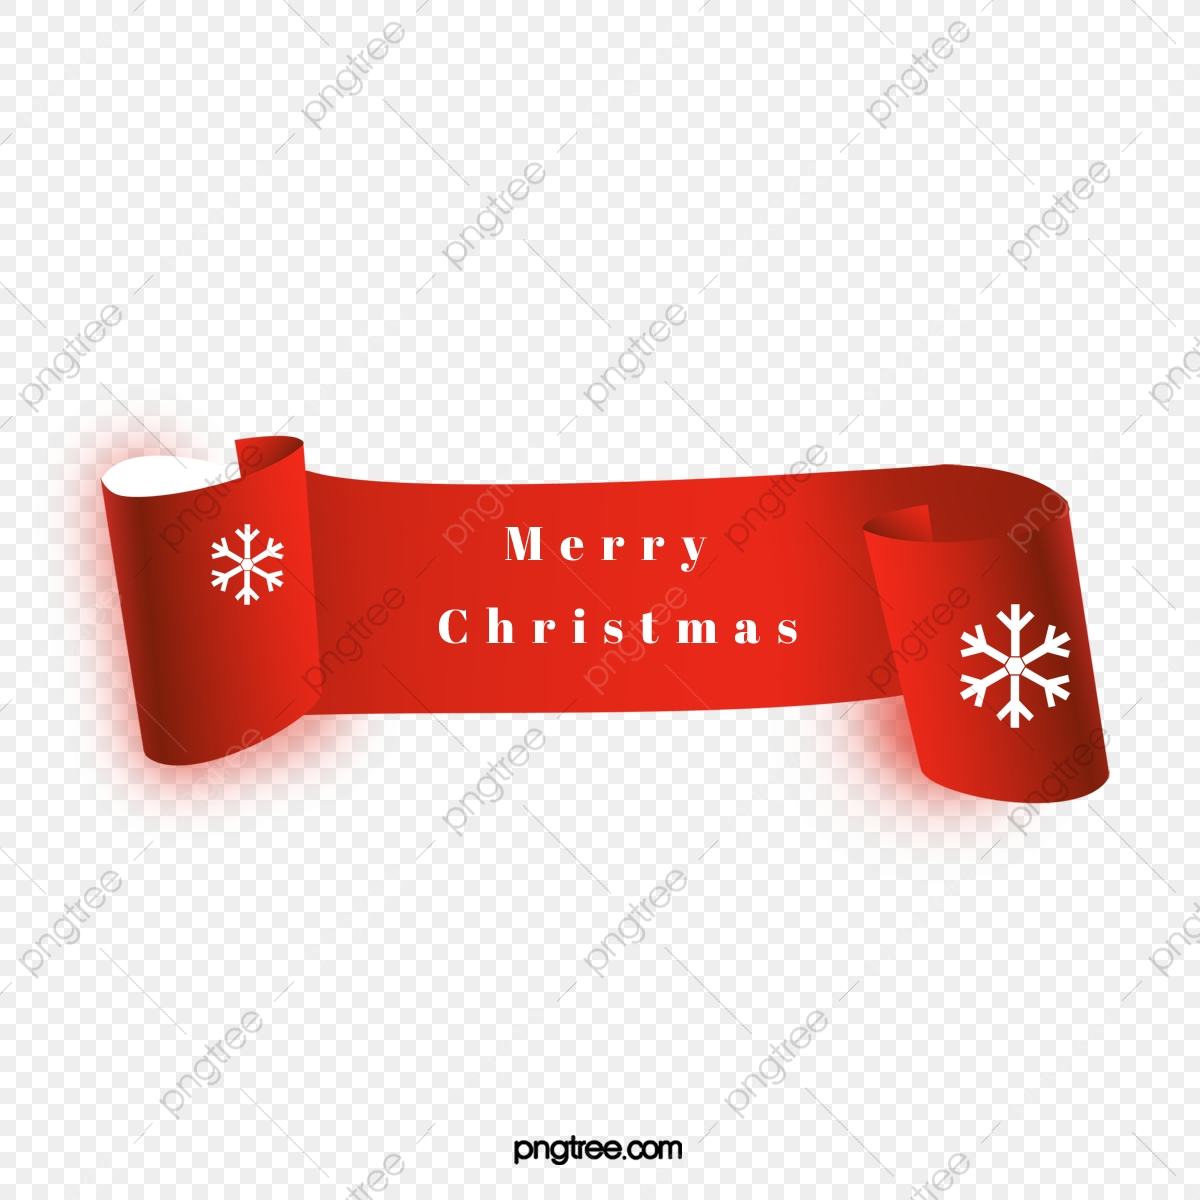 Crimping Merry Christmas Banner Vector, Merry Christmas.